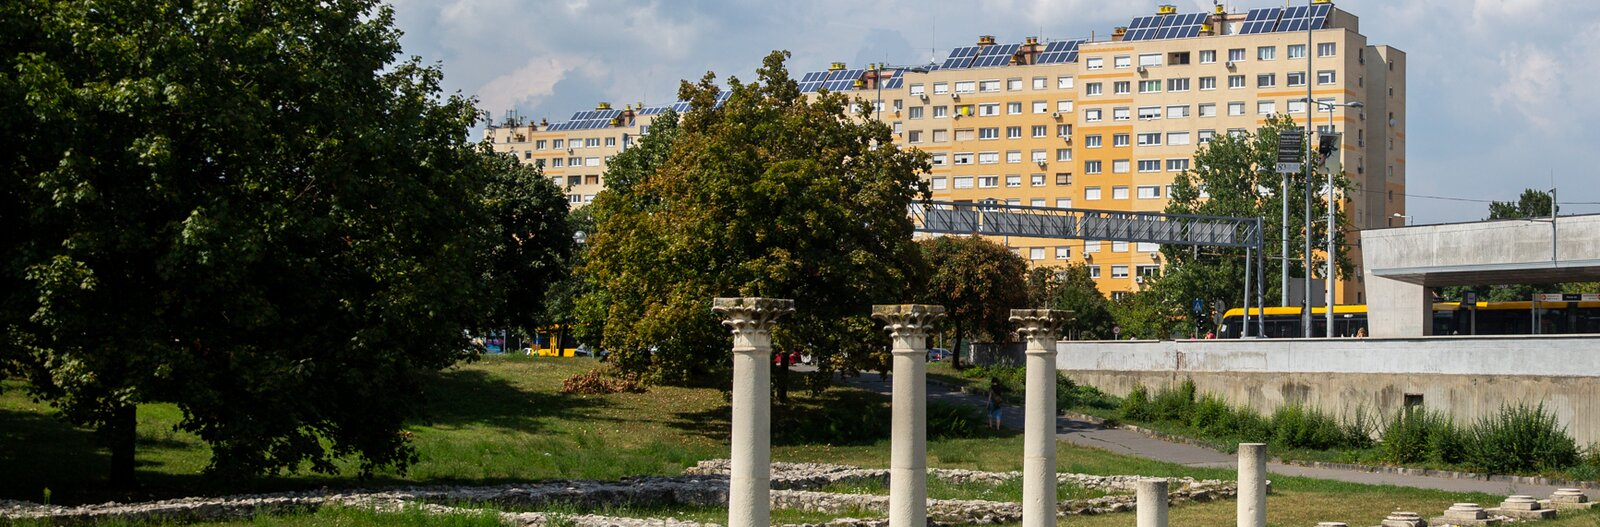 Roman Budapest: 6 ancient sites in our modern city